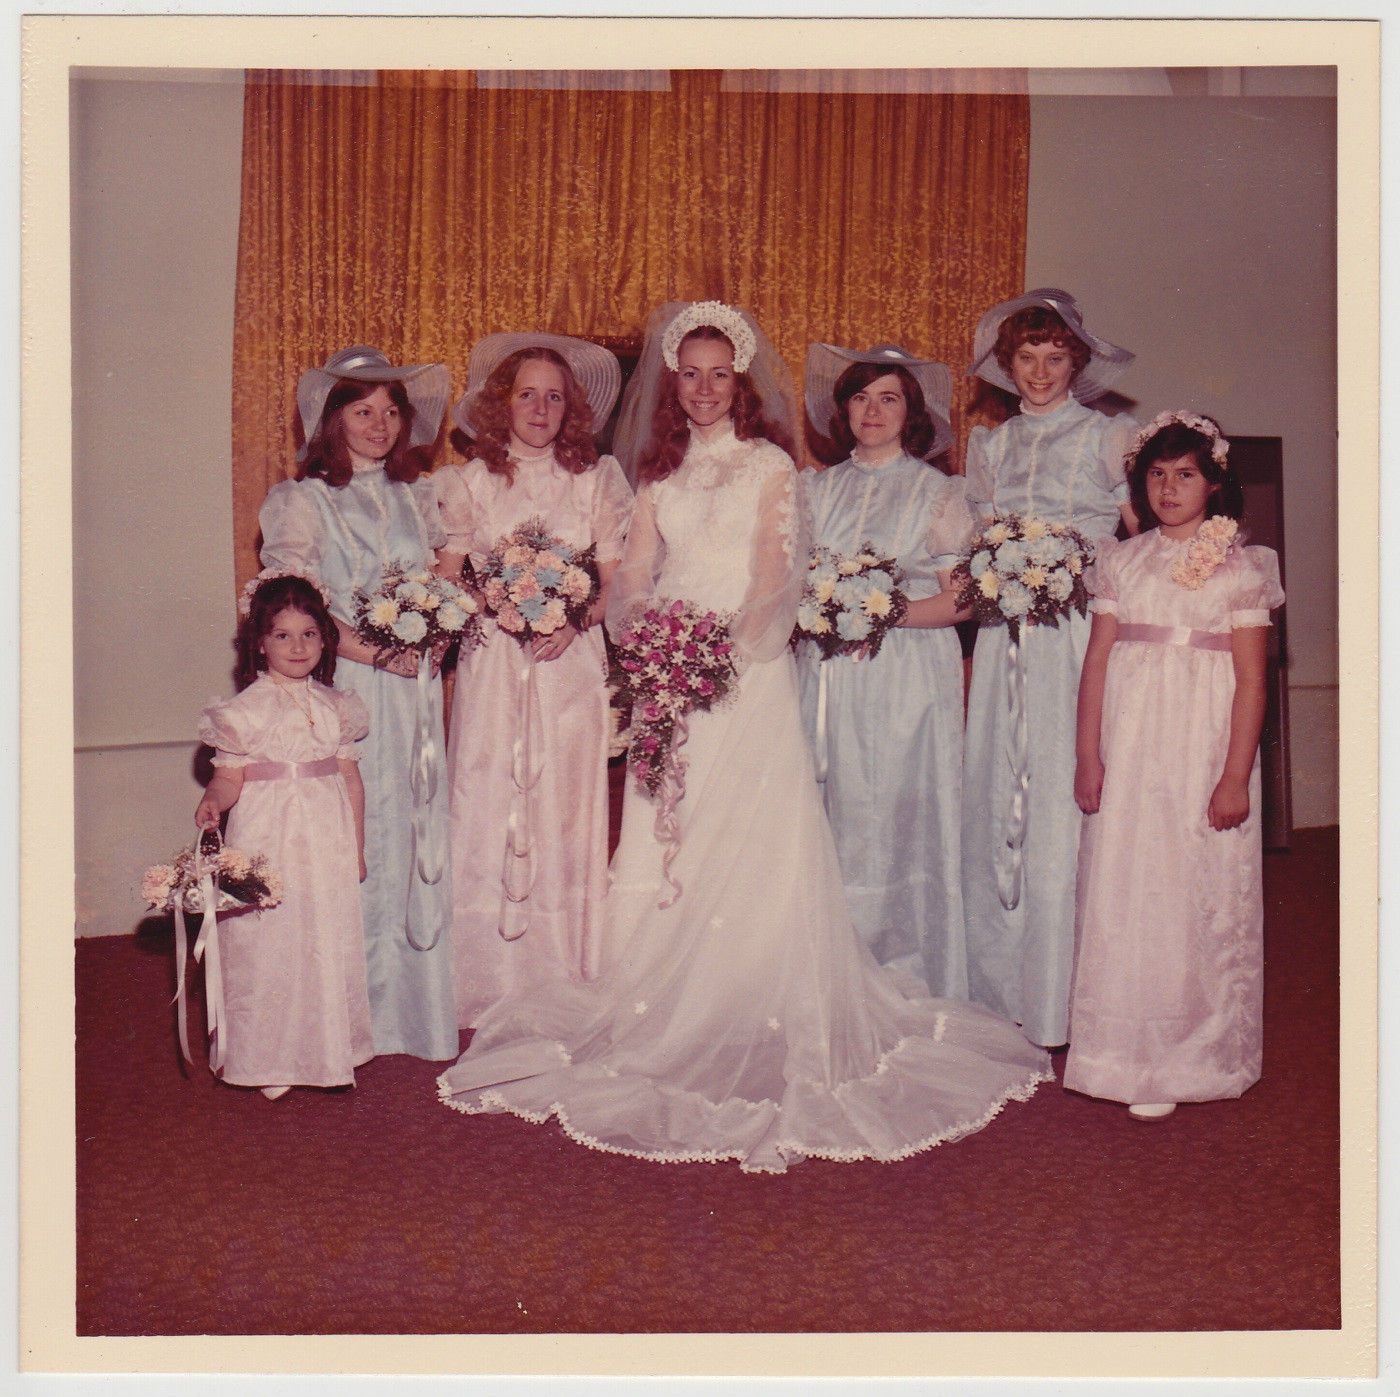 Vintage 70s photo wedding bride w maid of honor bridesmaids flower vintage 70s photo wedding bride w maid of honor bridesmaids flower girls ebay ombrellifo Images